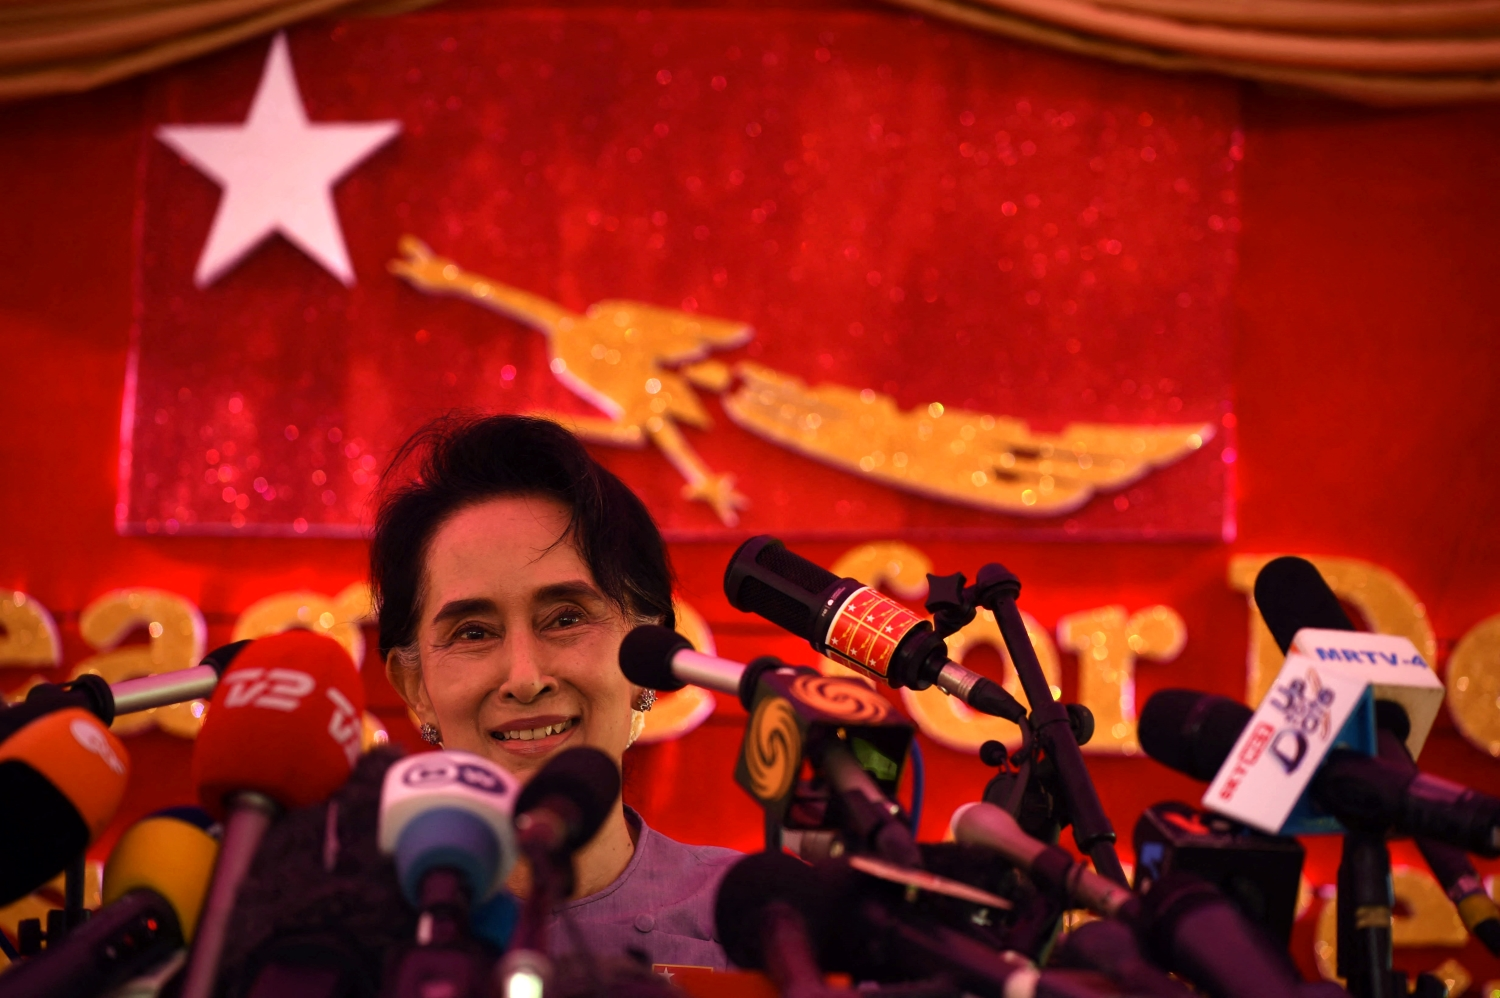 National League for Democracy chair Daw Aung San Suu Kyi speaks at a press conference at her Yangon residence on November 5, 2015, just says before a general election that the NLD won in a landslide – a result echoed by last year's vote. (AFP)